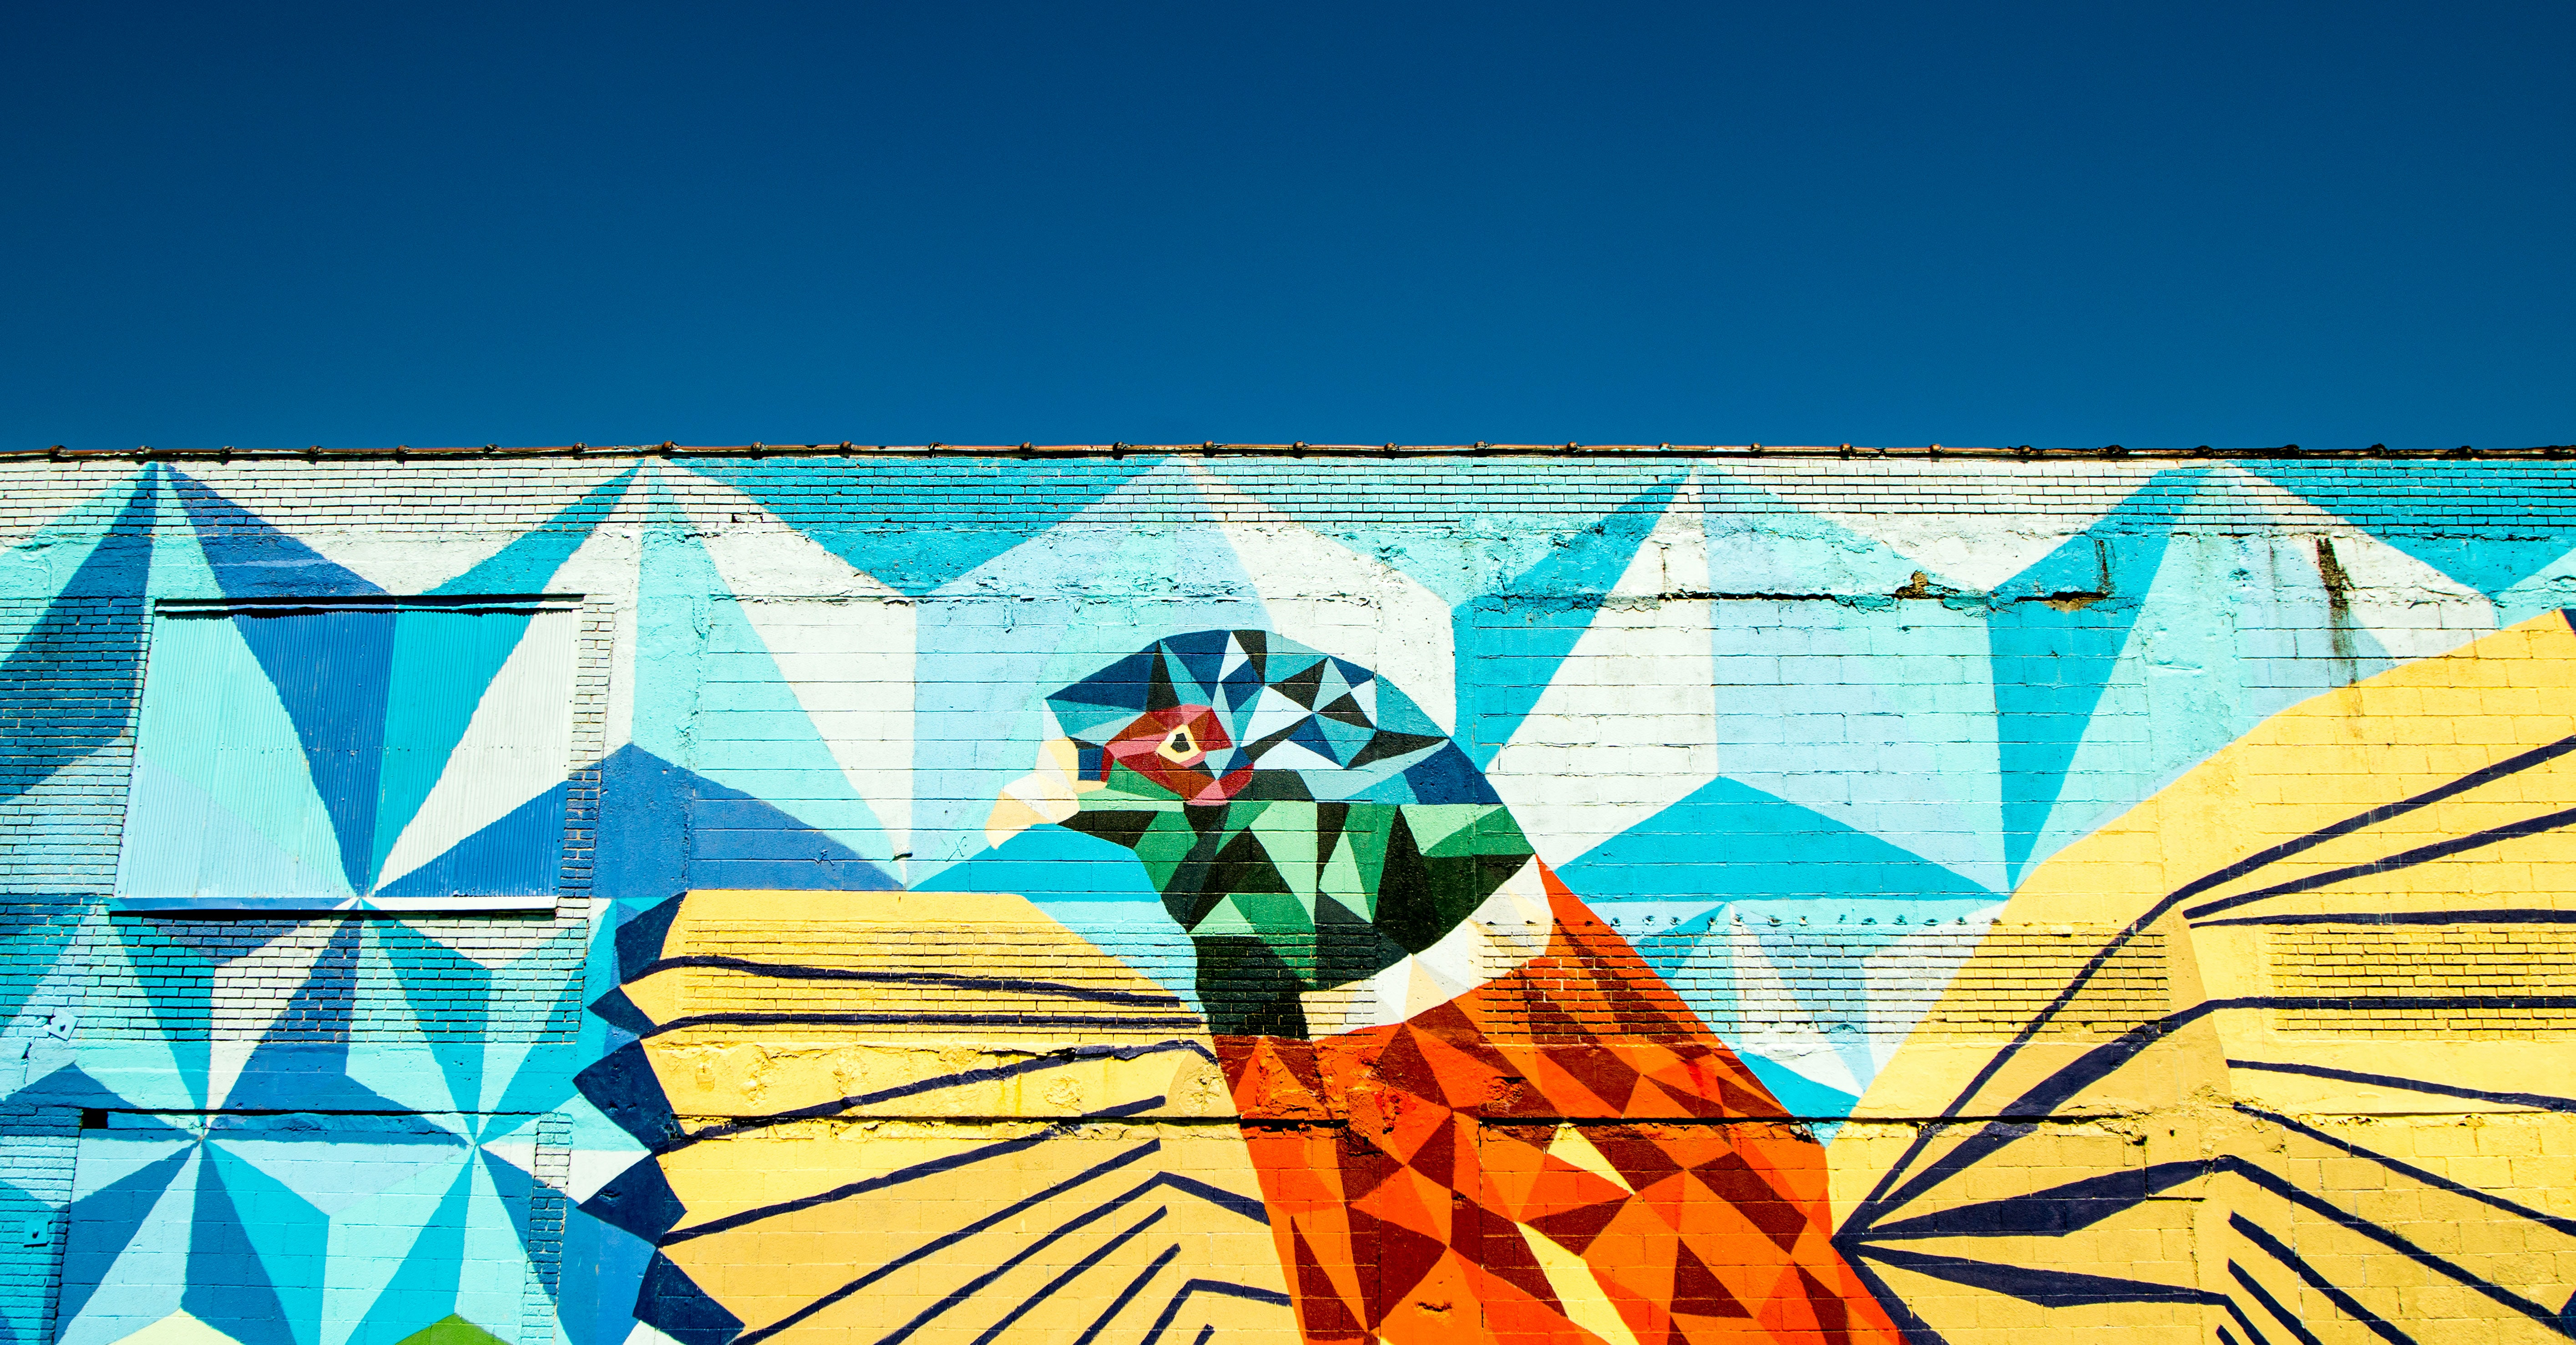 A colorful geometric graffiti drawing of a bird on a wall in Detroit